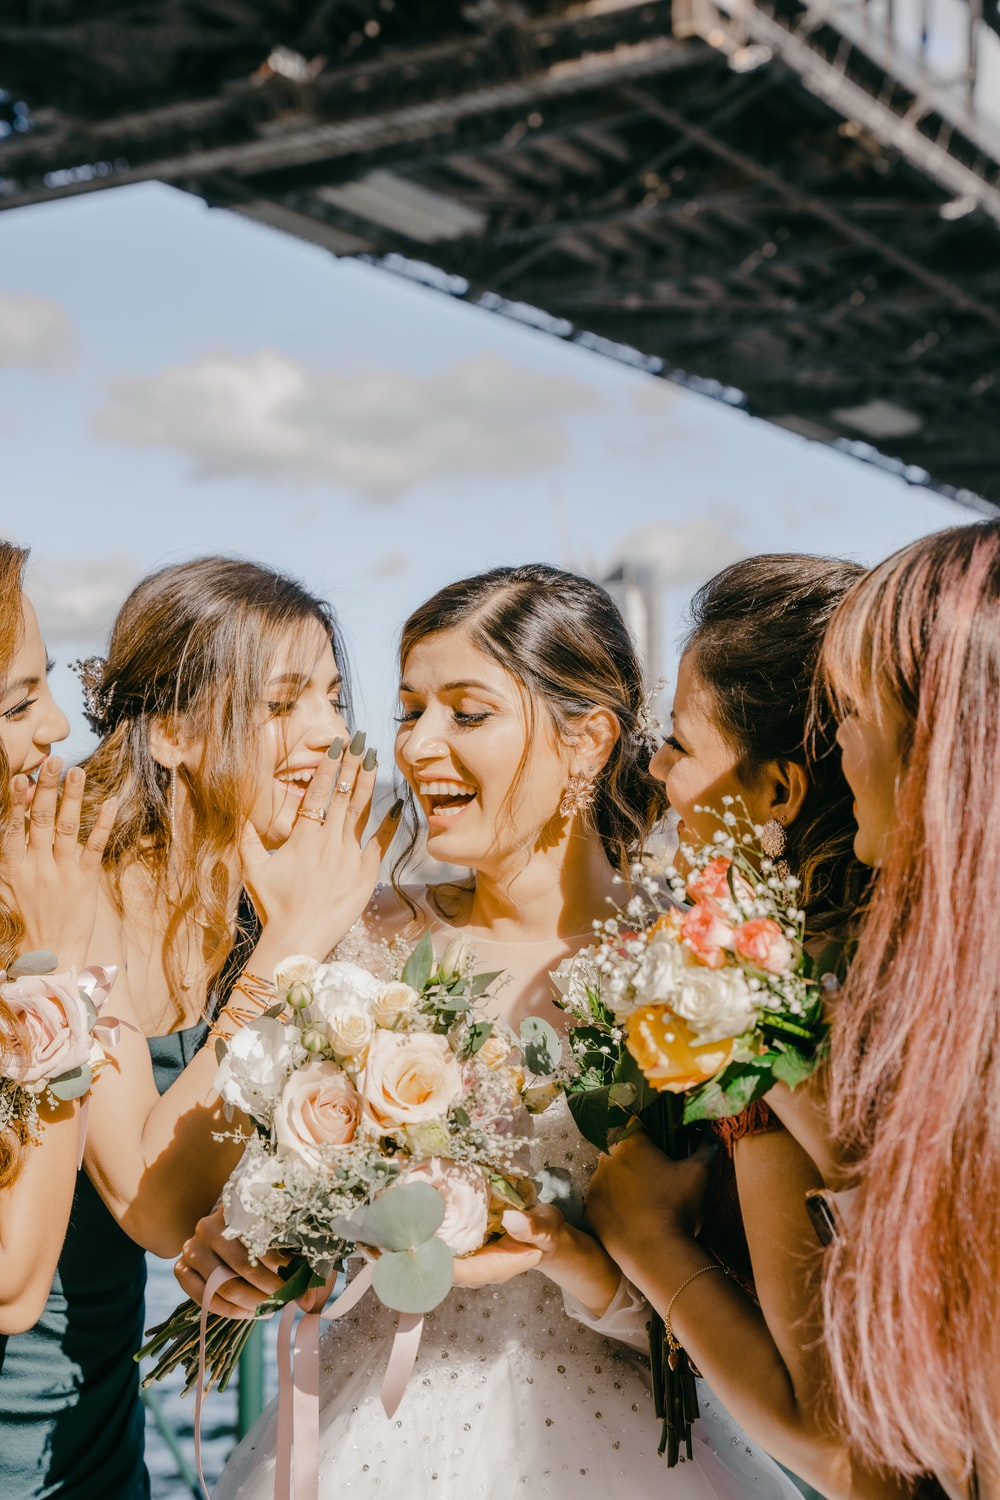 3 women in white floral dress holding bouquet of flowers